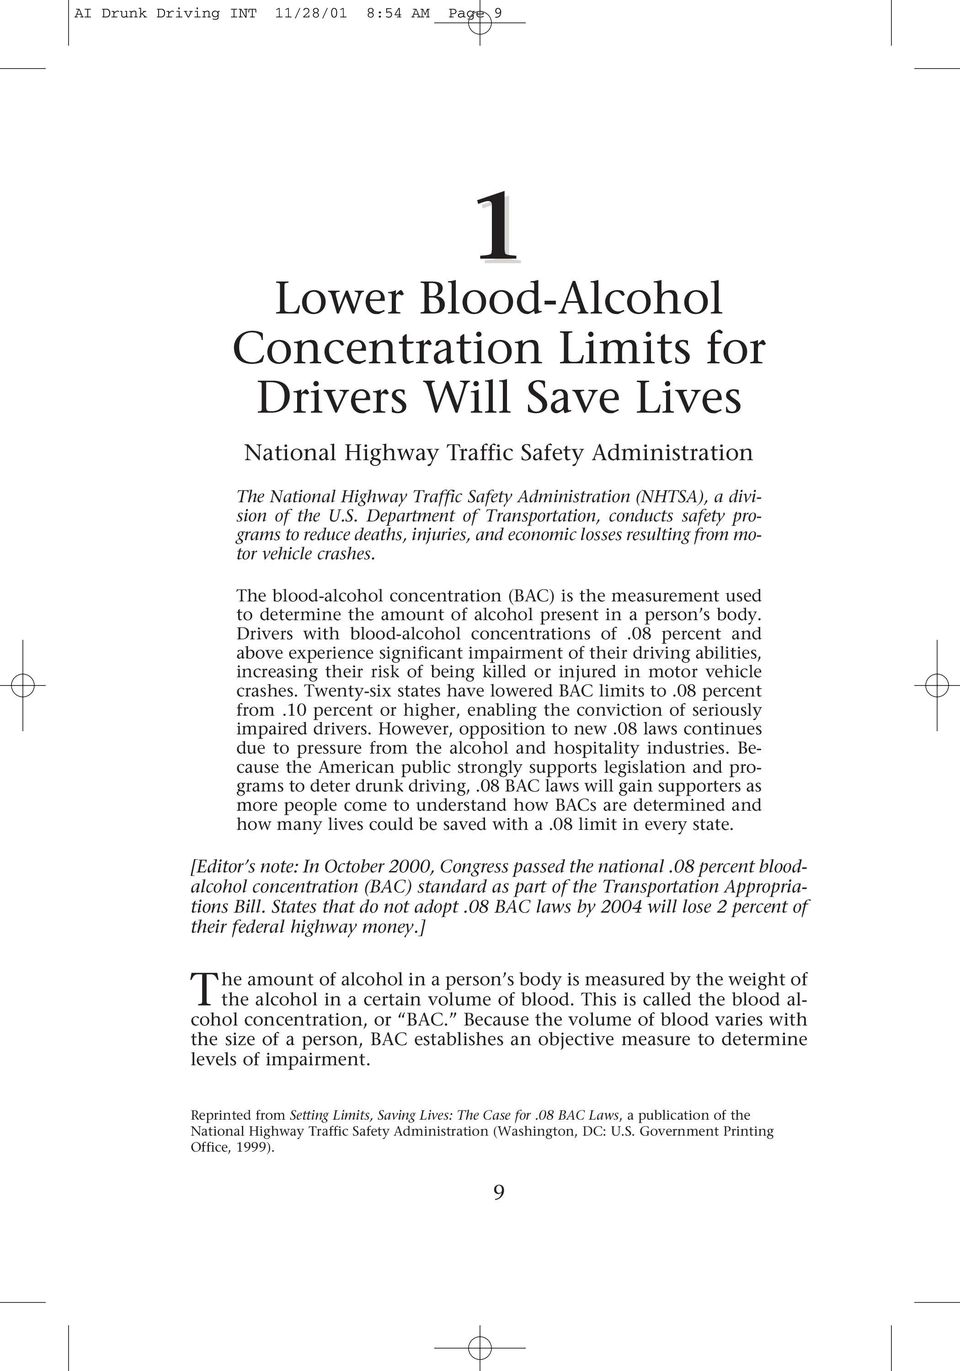 The blood-alcohol concentration (BAC) is the measurement used to determine the amount of alcohol present in a person s body. Drivers with blood-alcohol concentrations of.